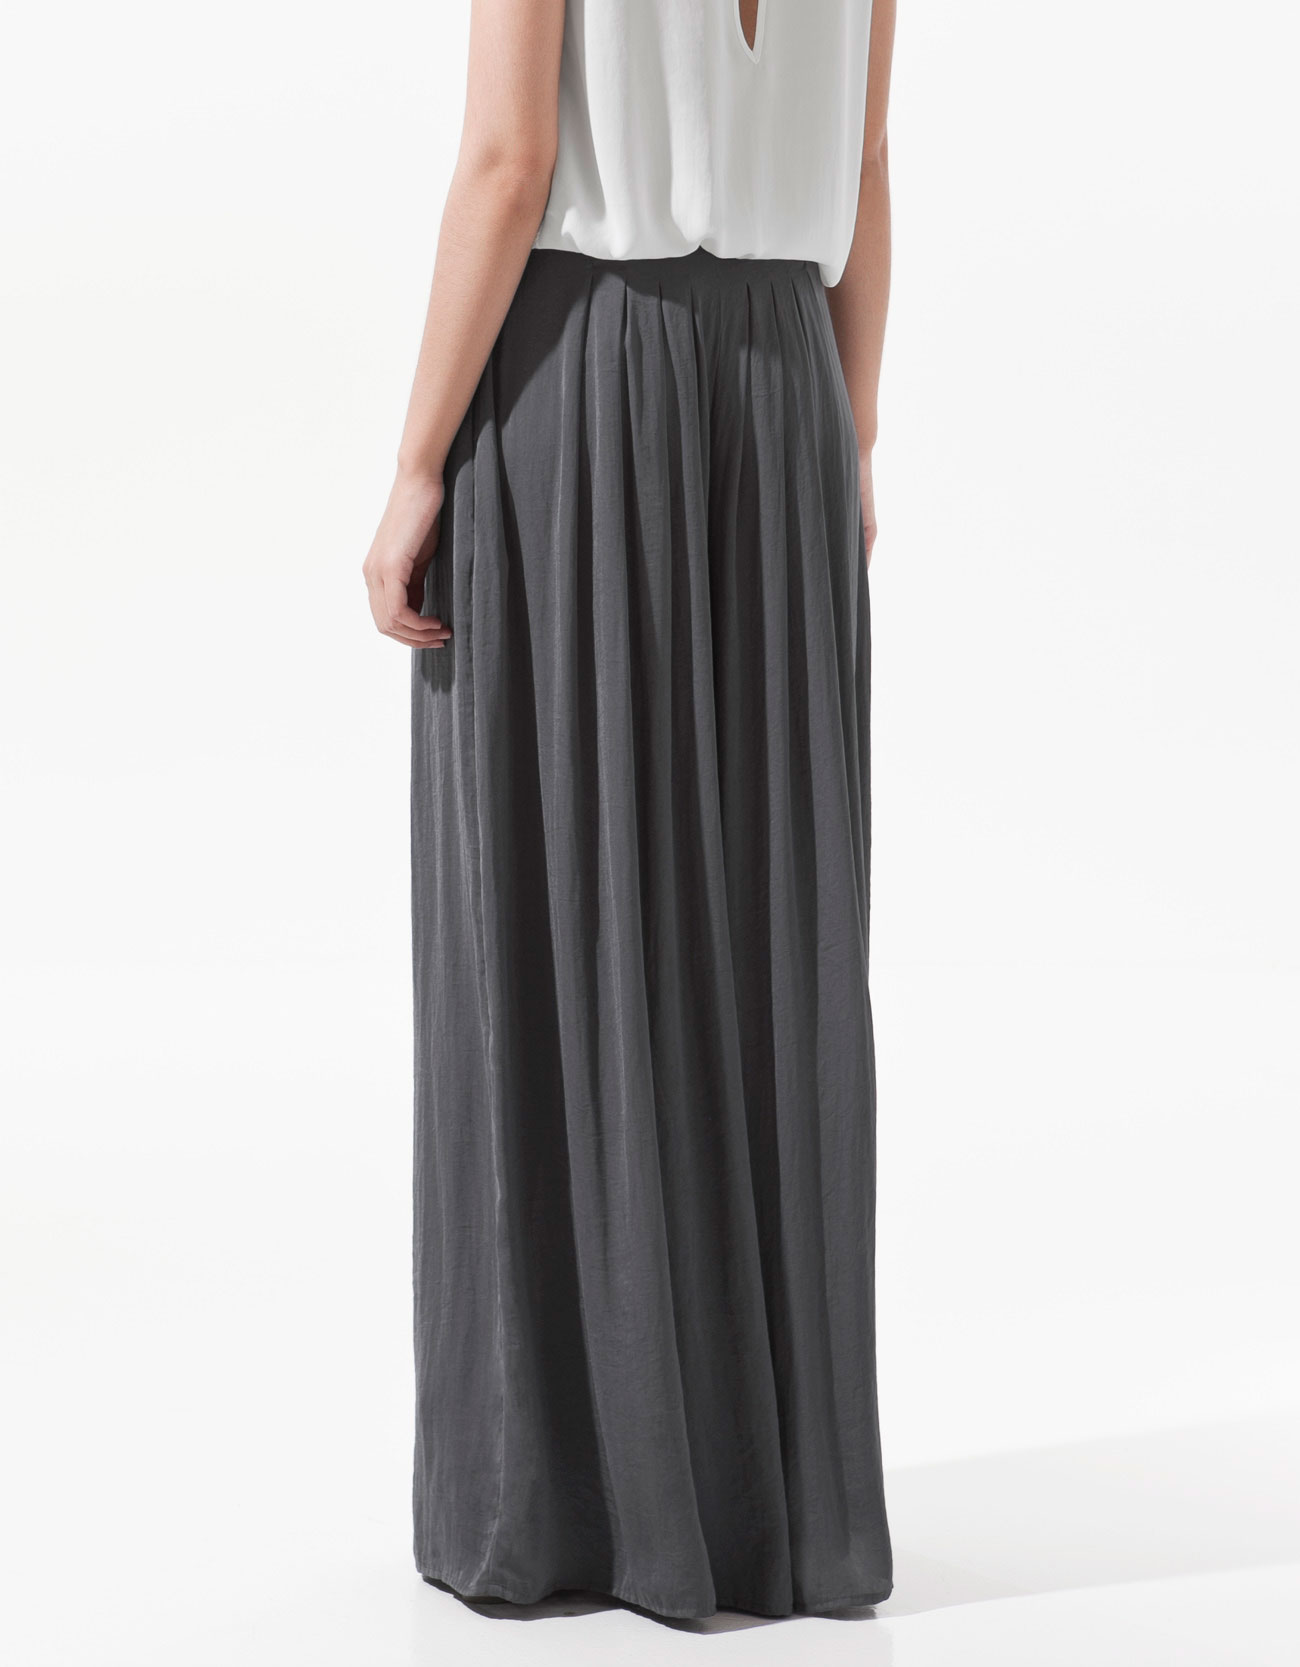 For More Other Style Palazzo Pants,pls click